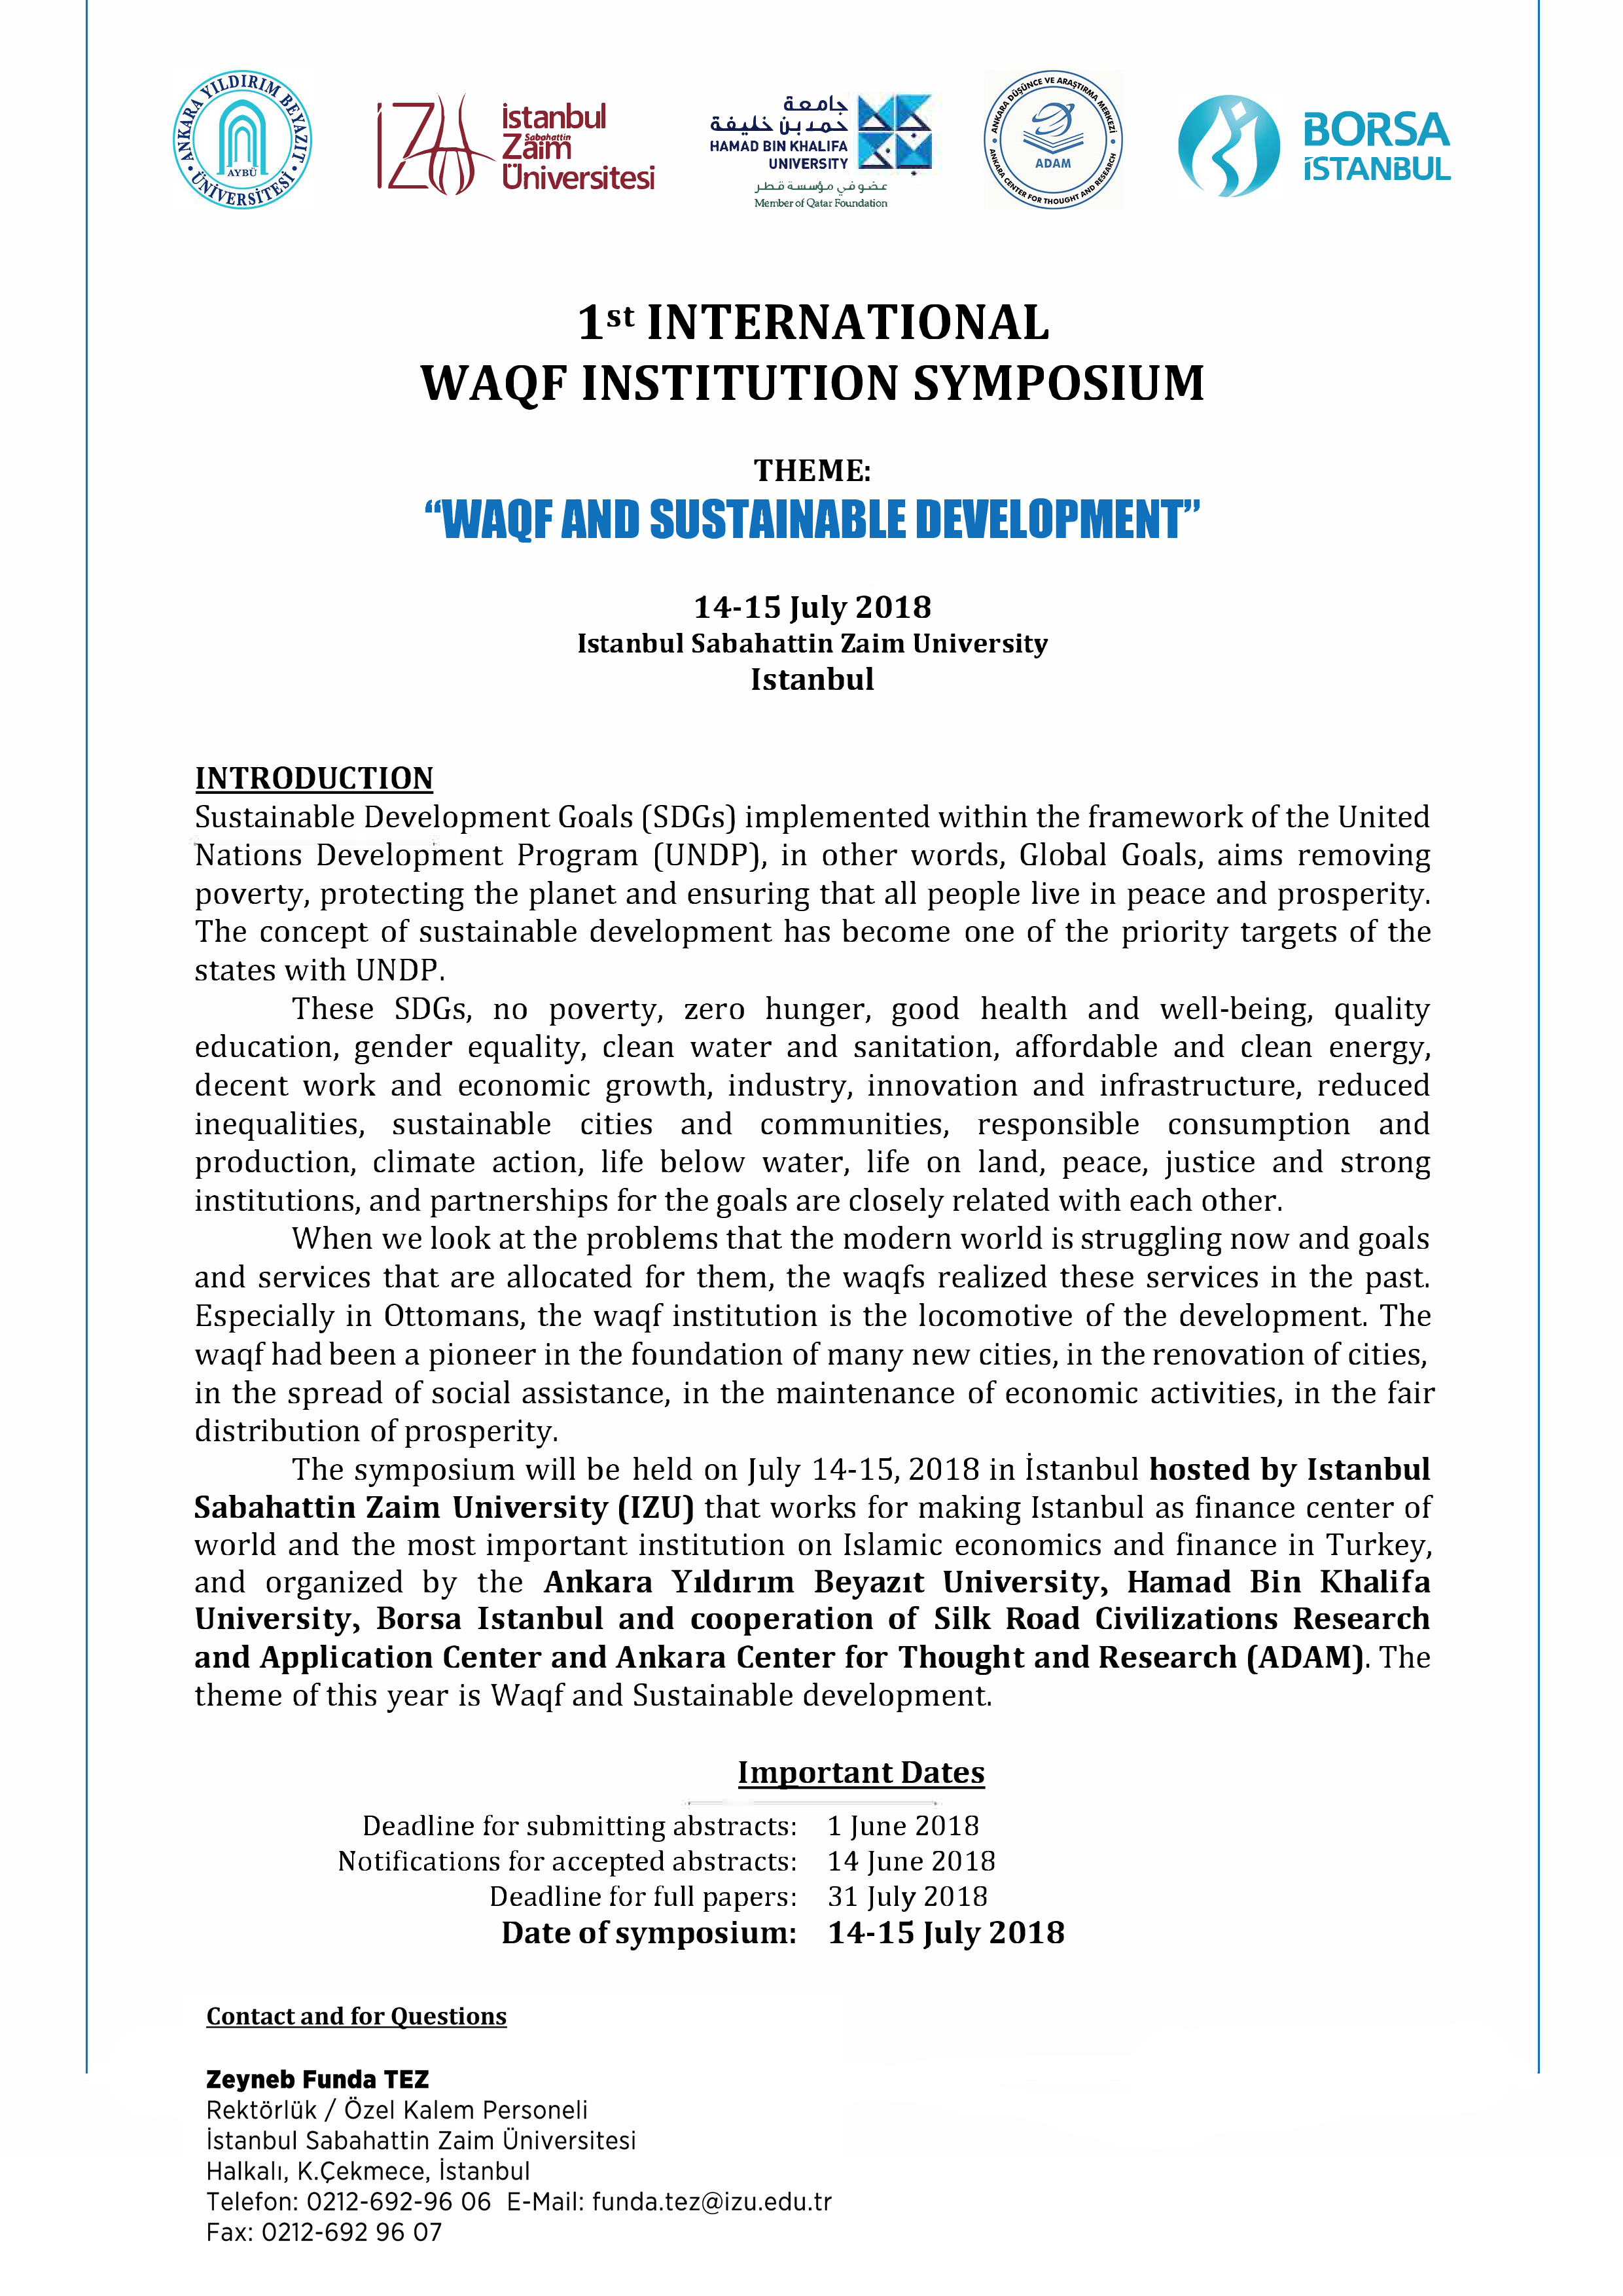 1st Internataional Waqf Institution Symposıum-ENG-Poster